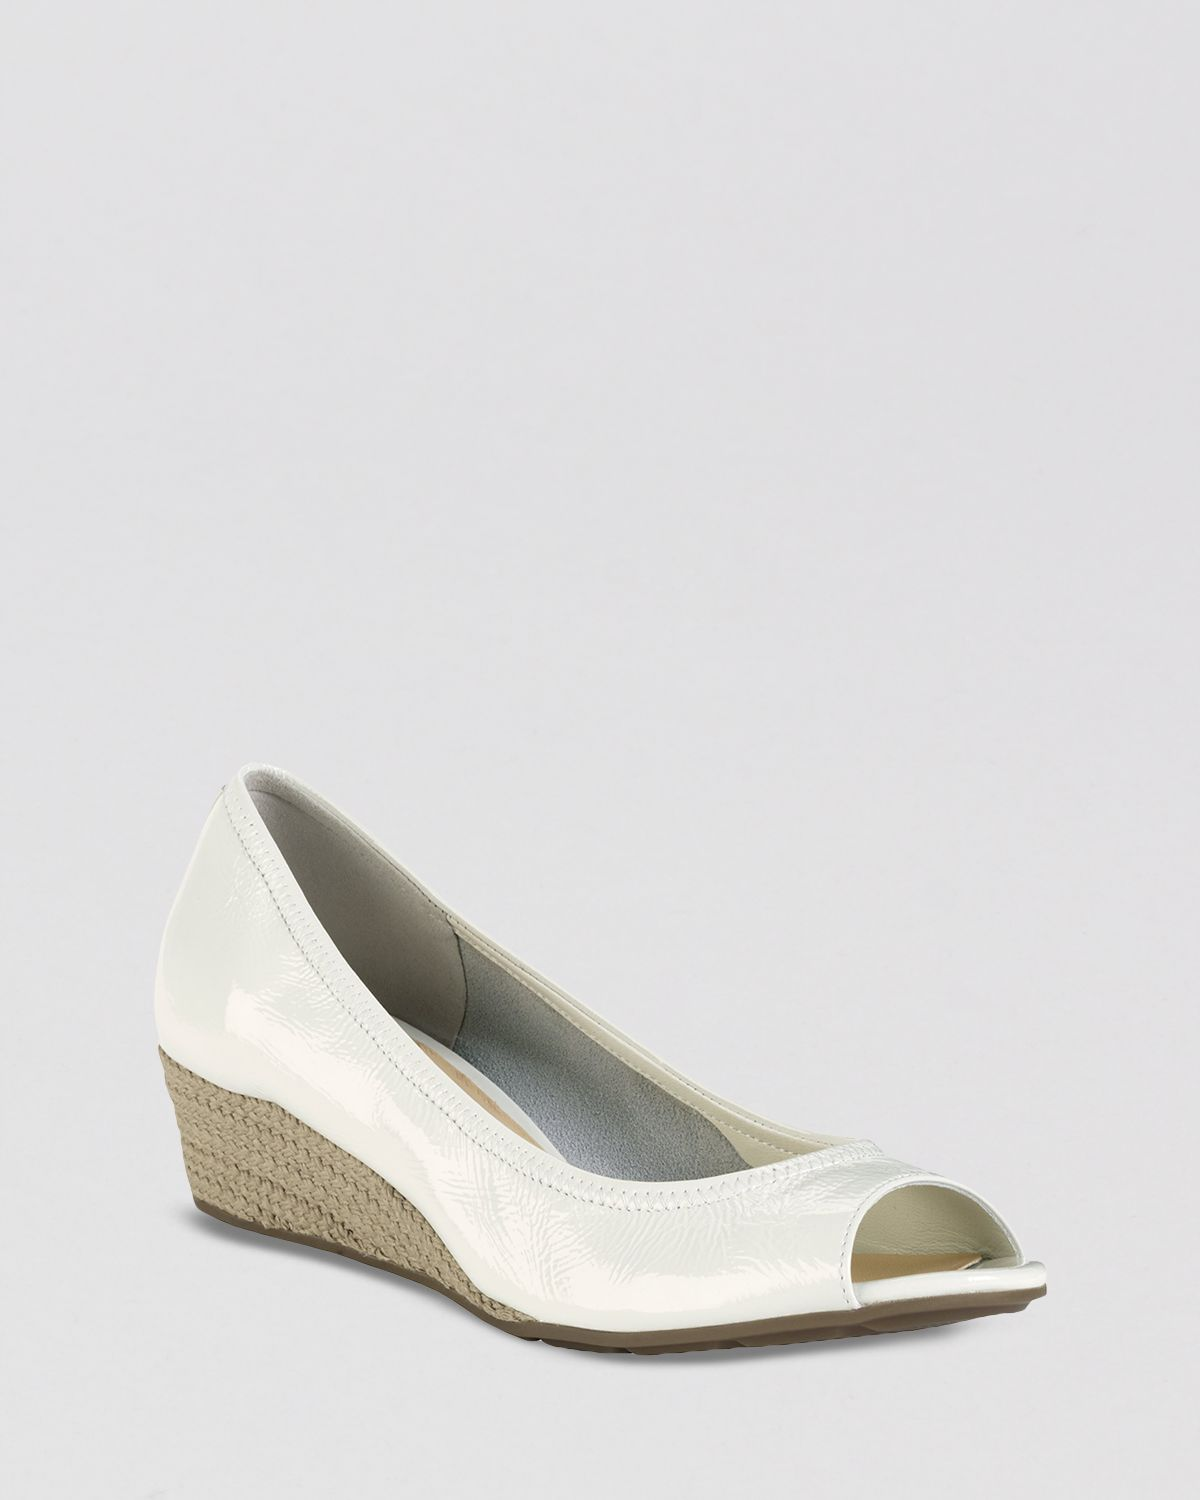 d3c301ad2350 Lyst - Cole Haan Open Toe Wedge Pumps Air Tali in Natural